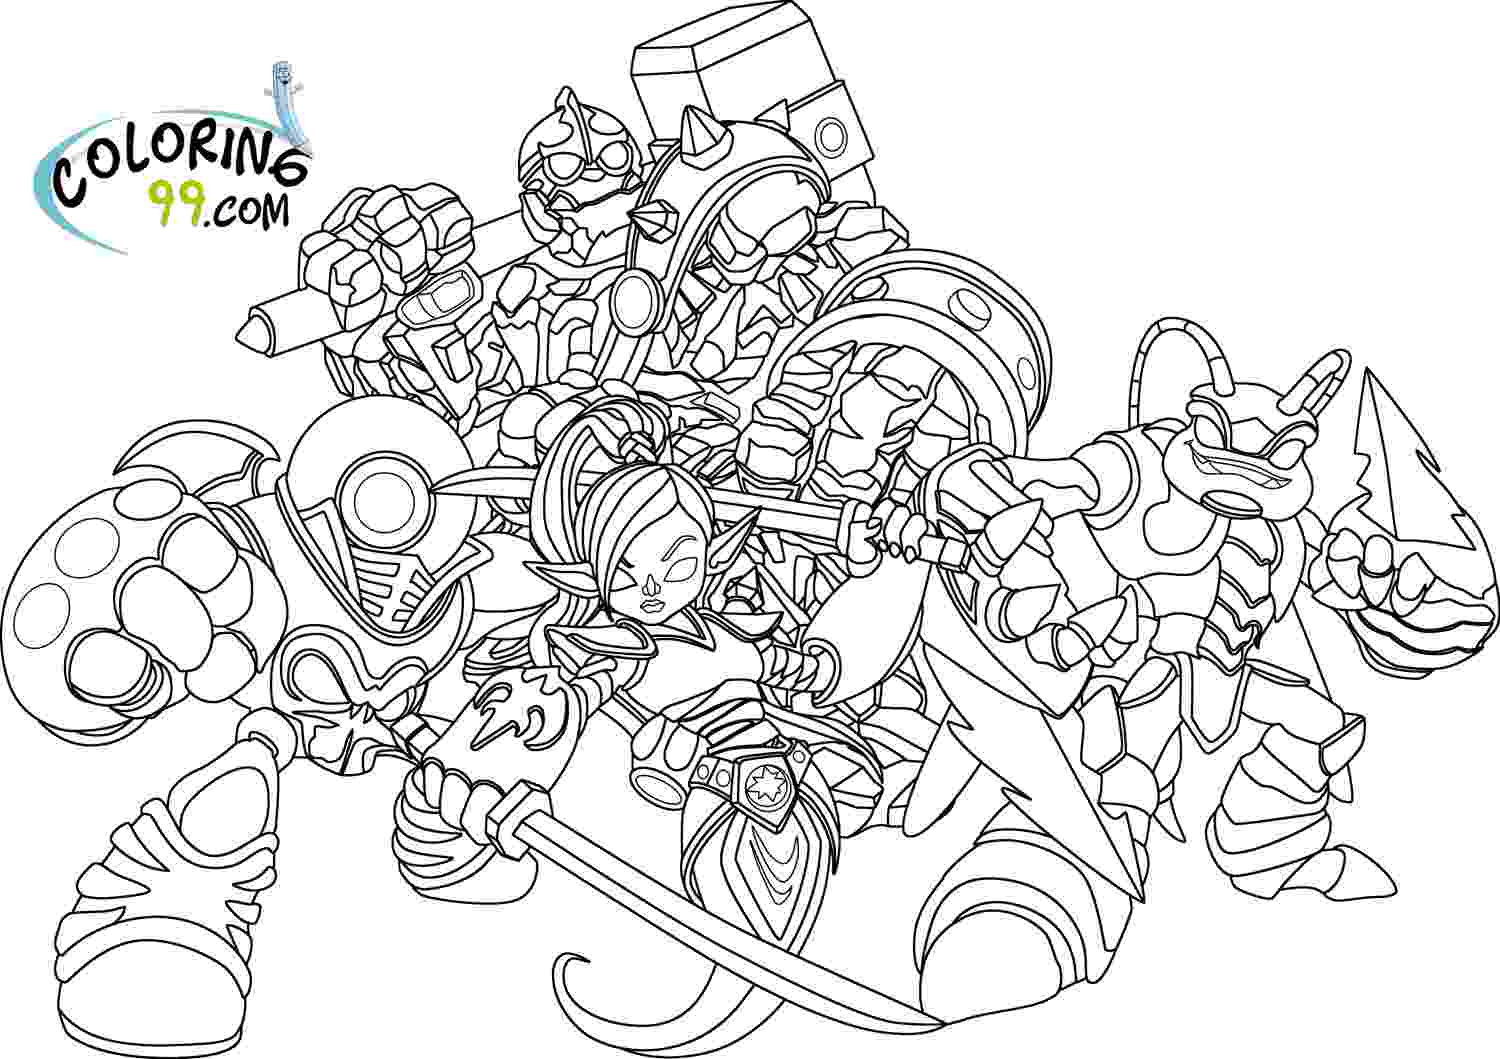 skylander giants coloring pages printable skylander giants coloring pages for kids coloring skylander pages giants